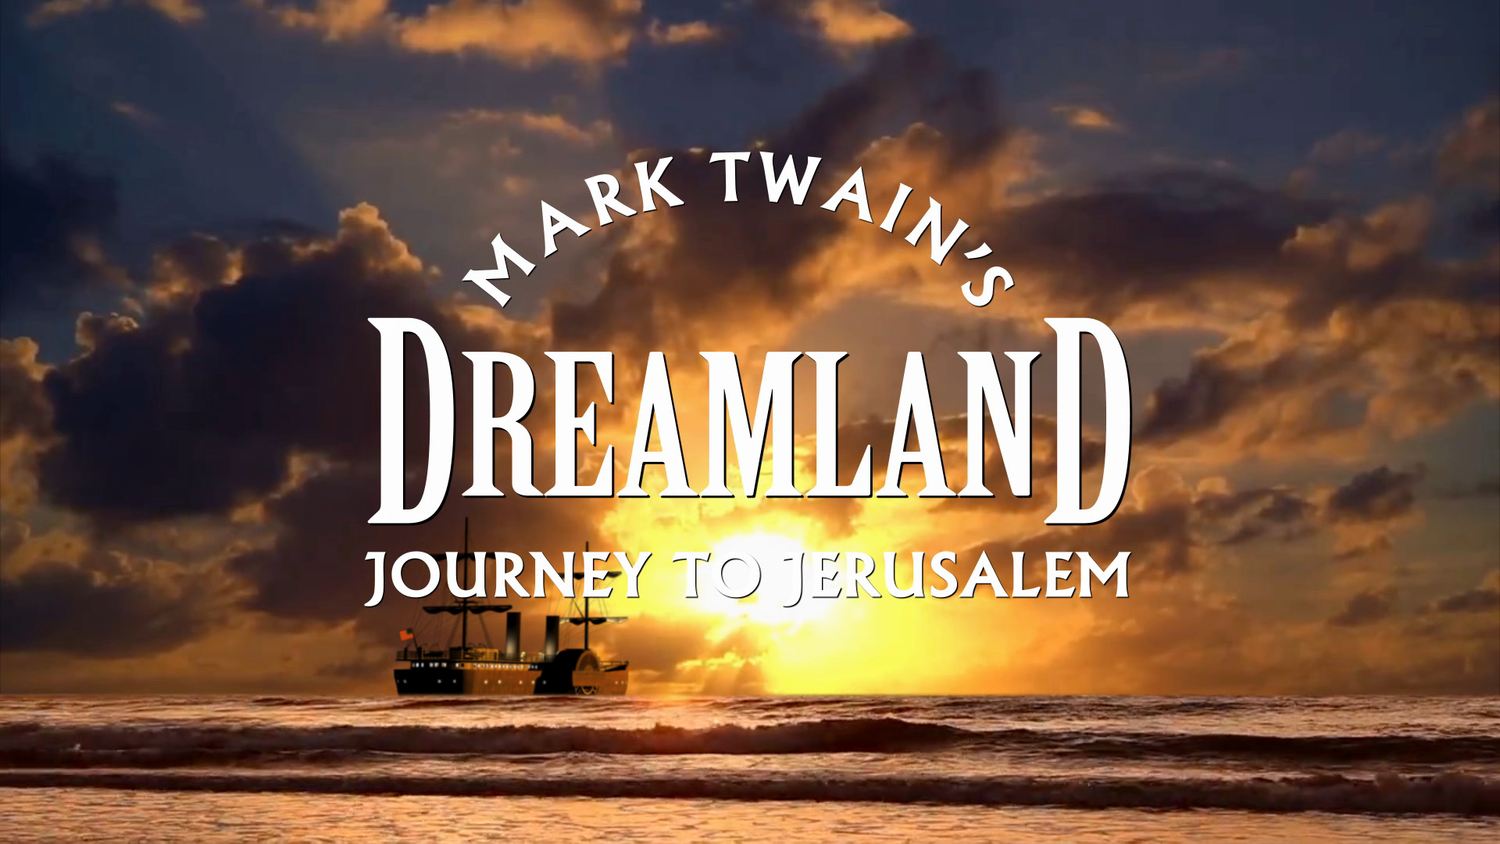 Mark Twain's Journey to Jerusalem: Dreamland